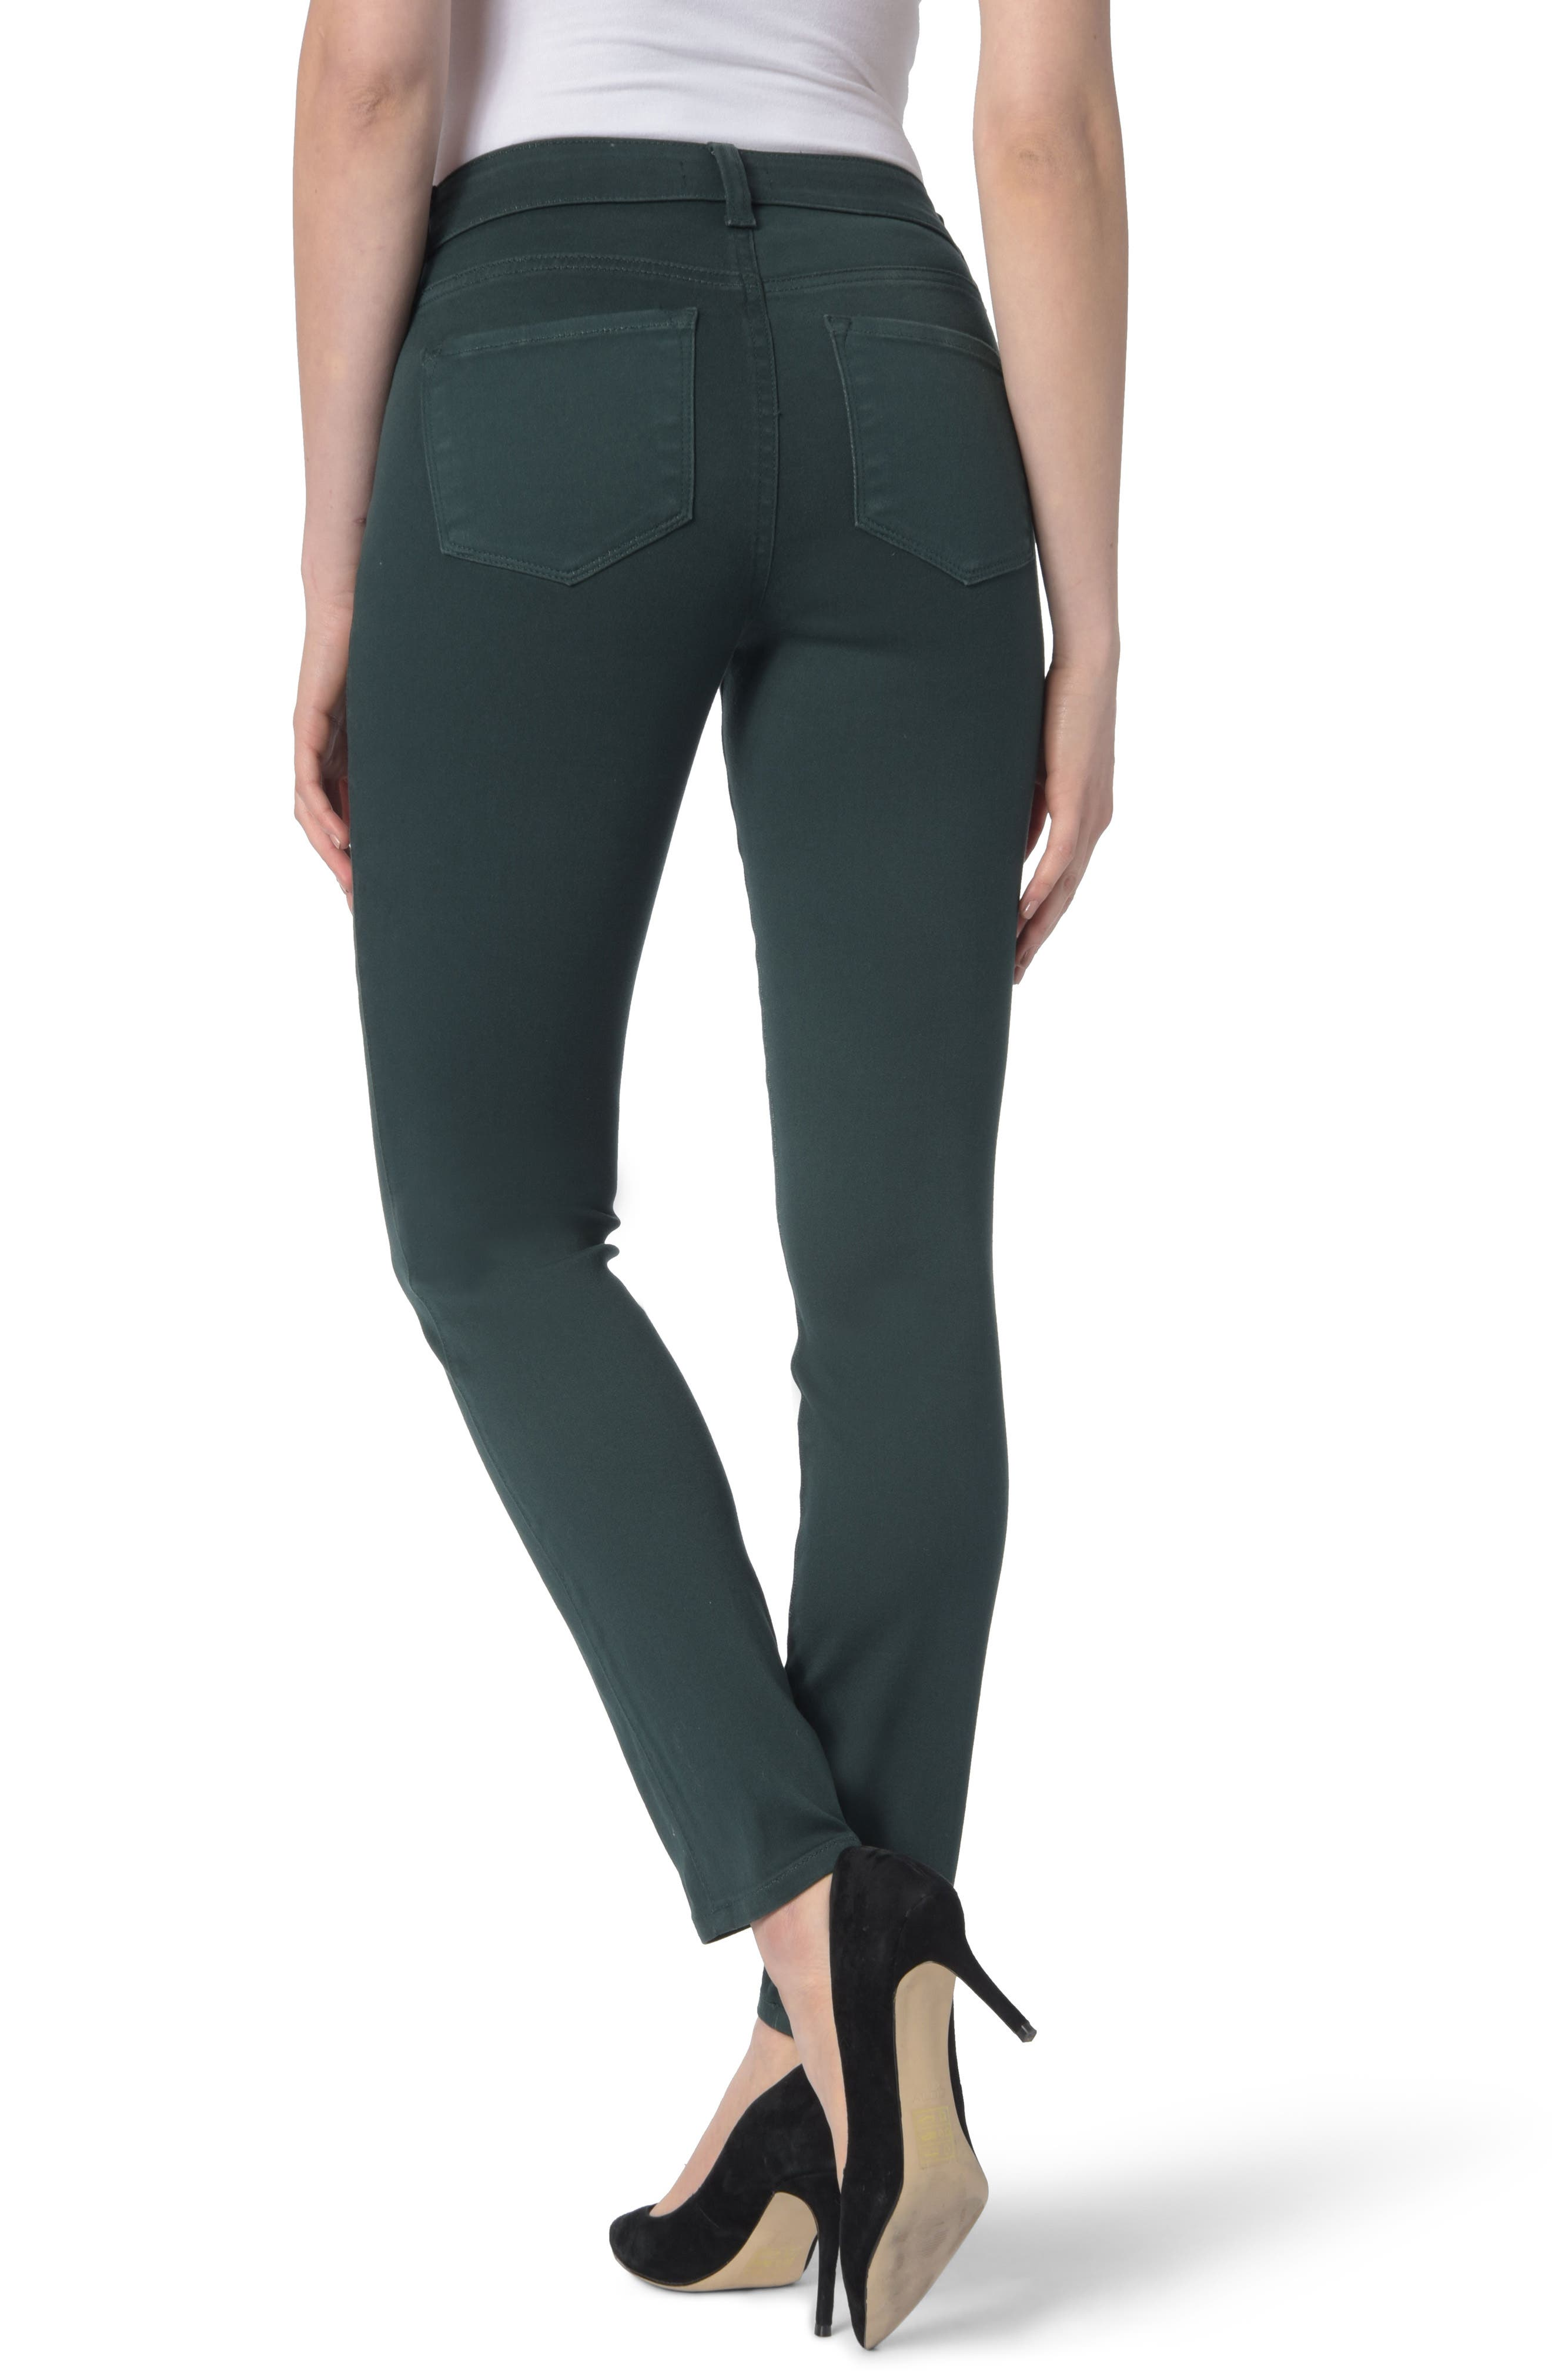 Ami High Waist Colored Stretch Skinny Jeans,                             Alternate thumbnail 2, color,                             VERIDIAN